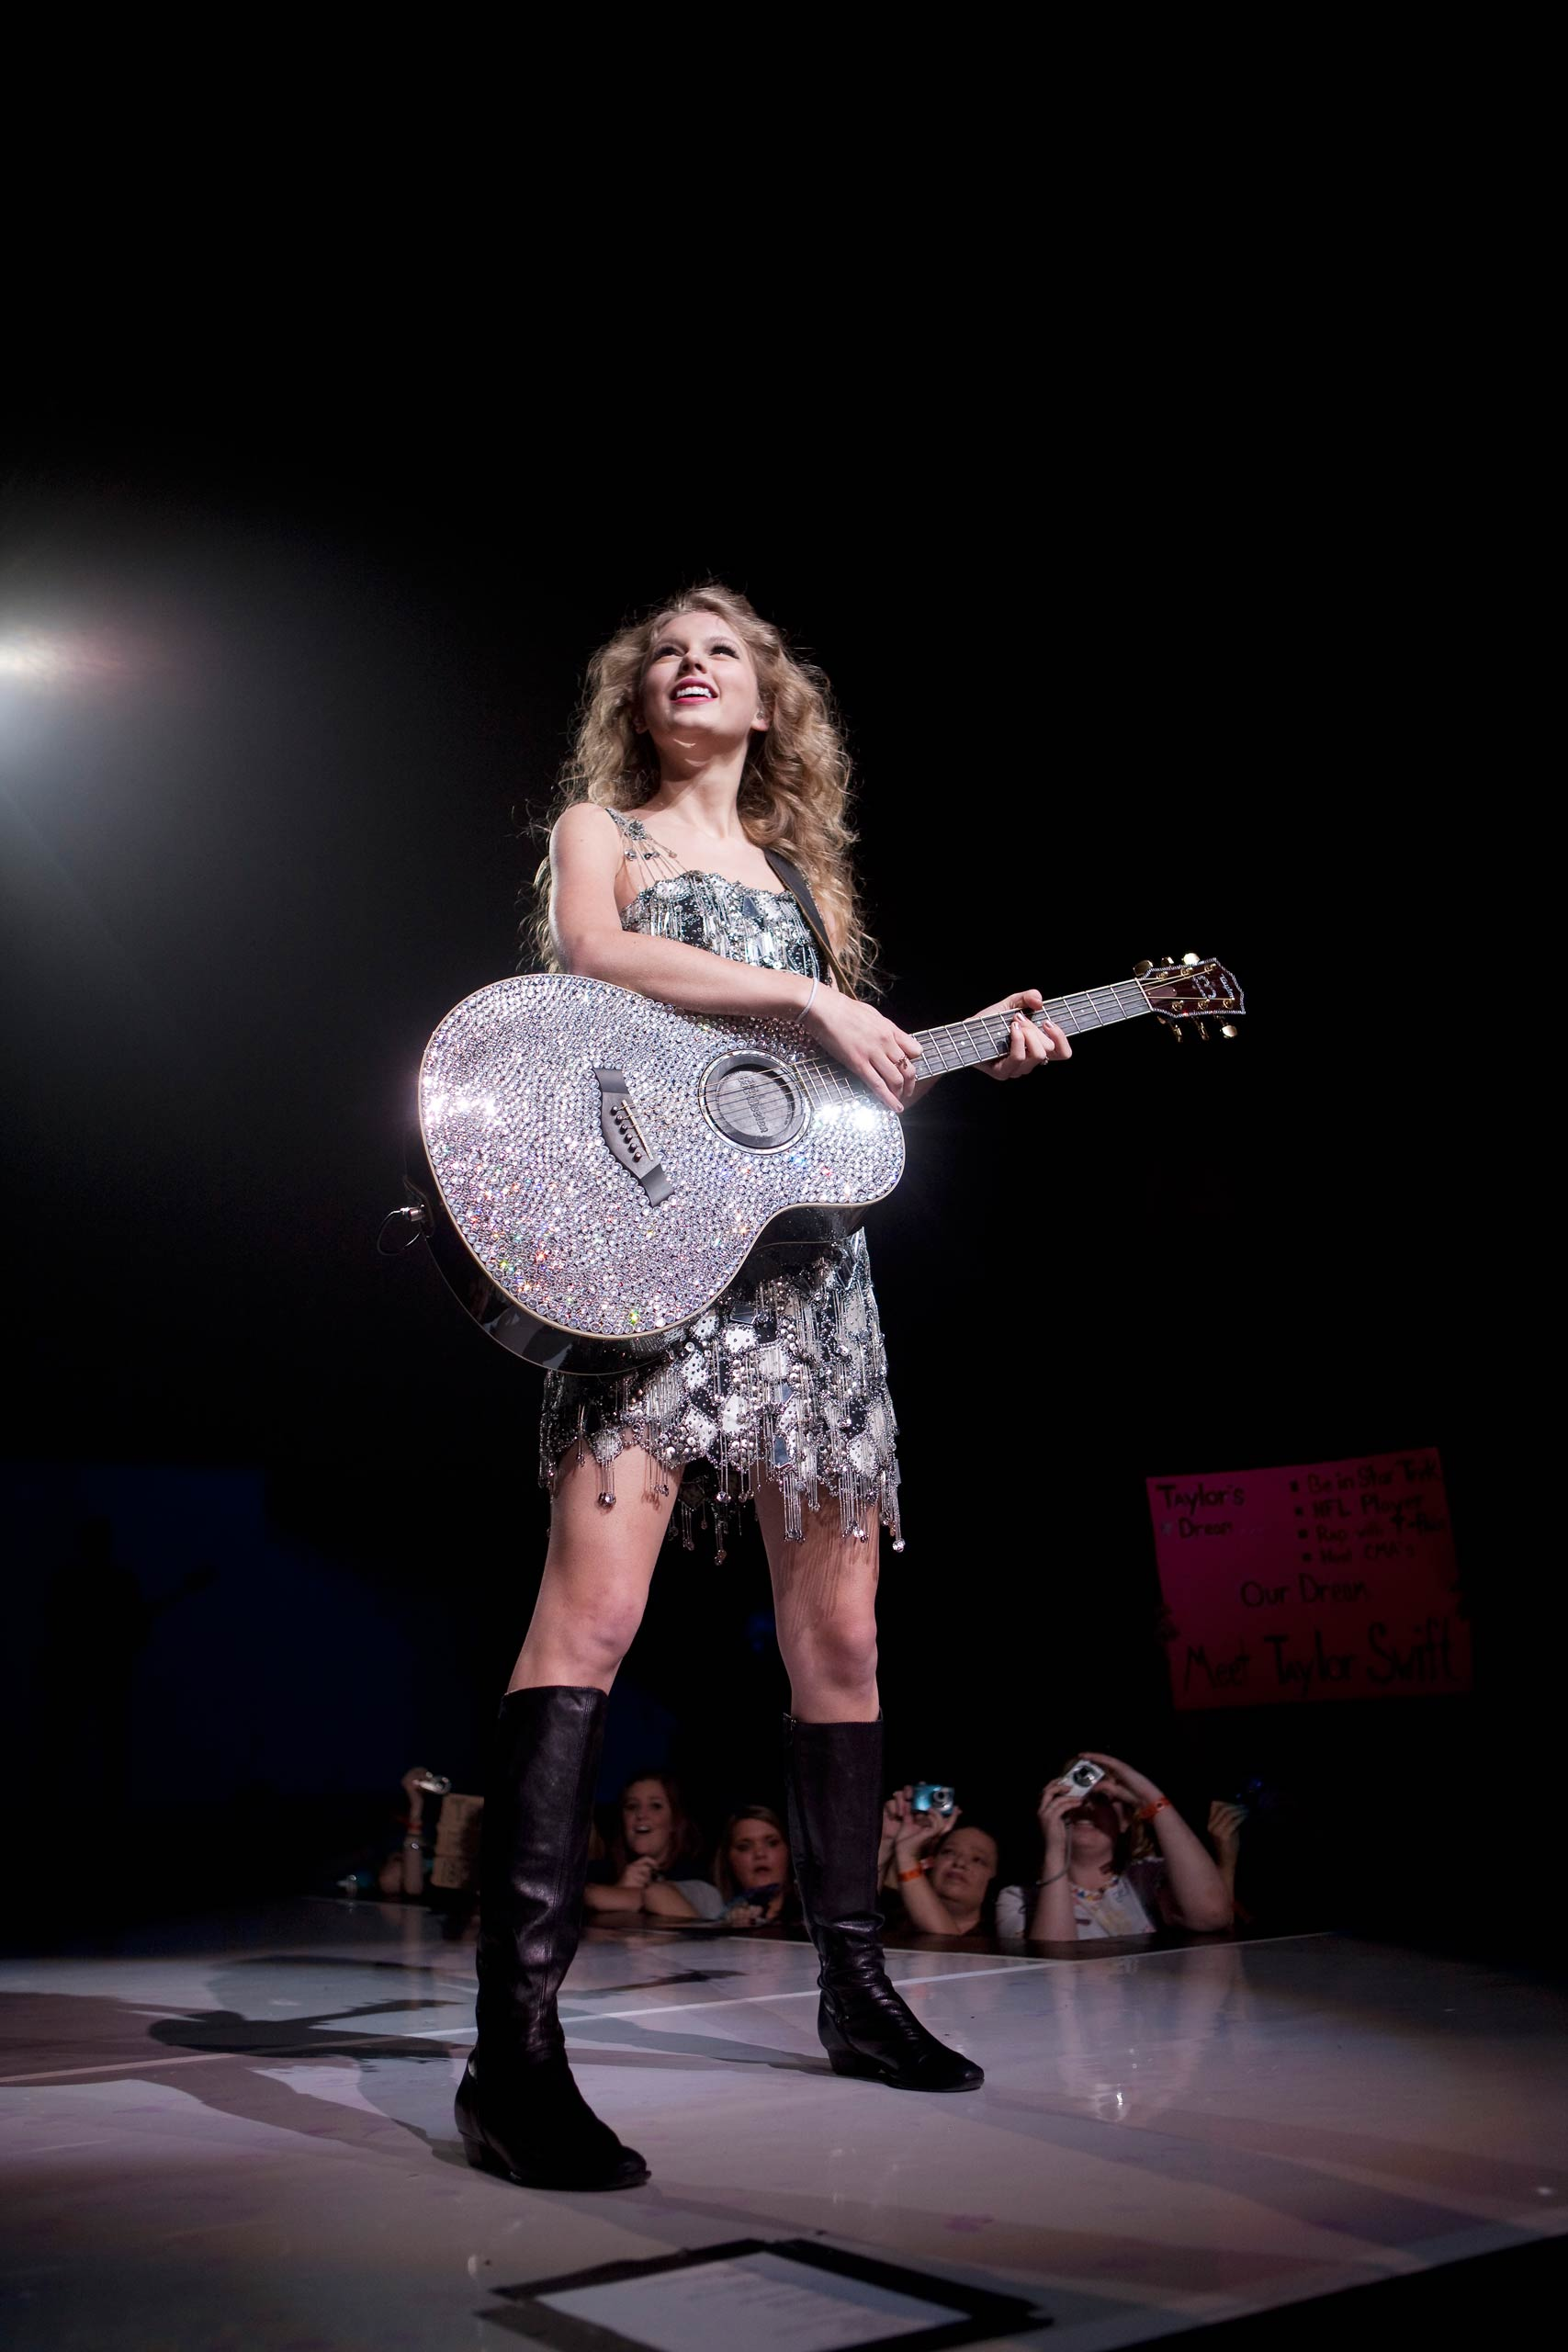 Taylor SwiftTaylor Swift backstage performs her Fearless tour in Auburn Hills outside Detroit MI